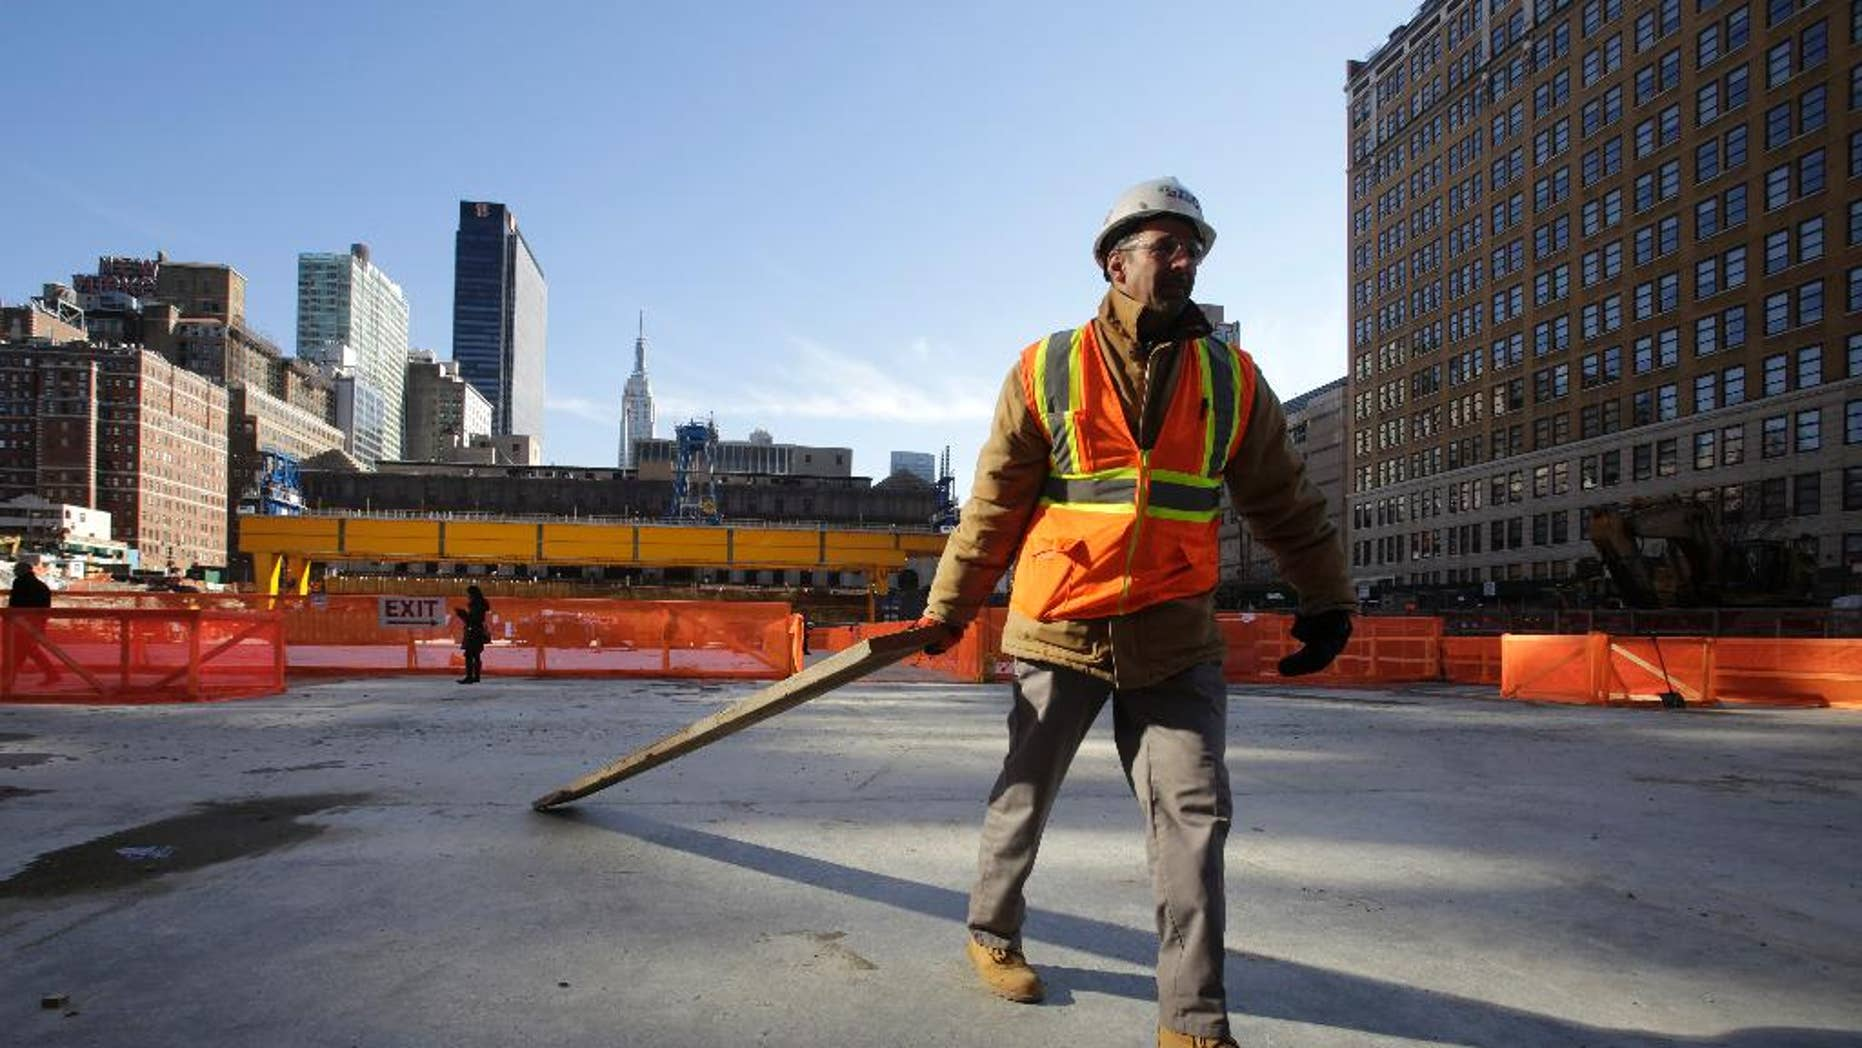 FILE - In this Nov. 18, 2014 file photo, a construction worker clears wood from a platform that spans the Penn Station railroad tracks in midtown Manhattan, in New York. The Institute for Supply Management, a trade group of purchasing managers, issues its index of non-manufacturing activity for December on Tuesday, Jan. 6, 2015. (AP Photo/Mark Lennihan, File)